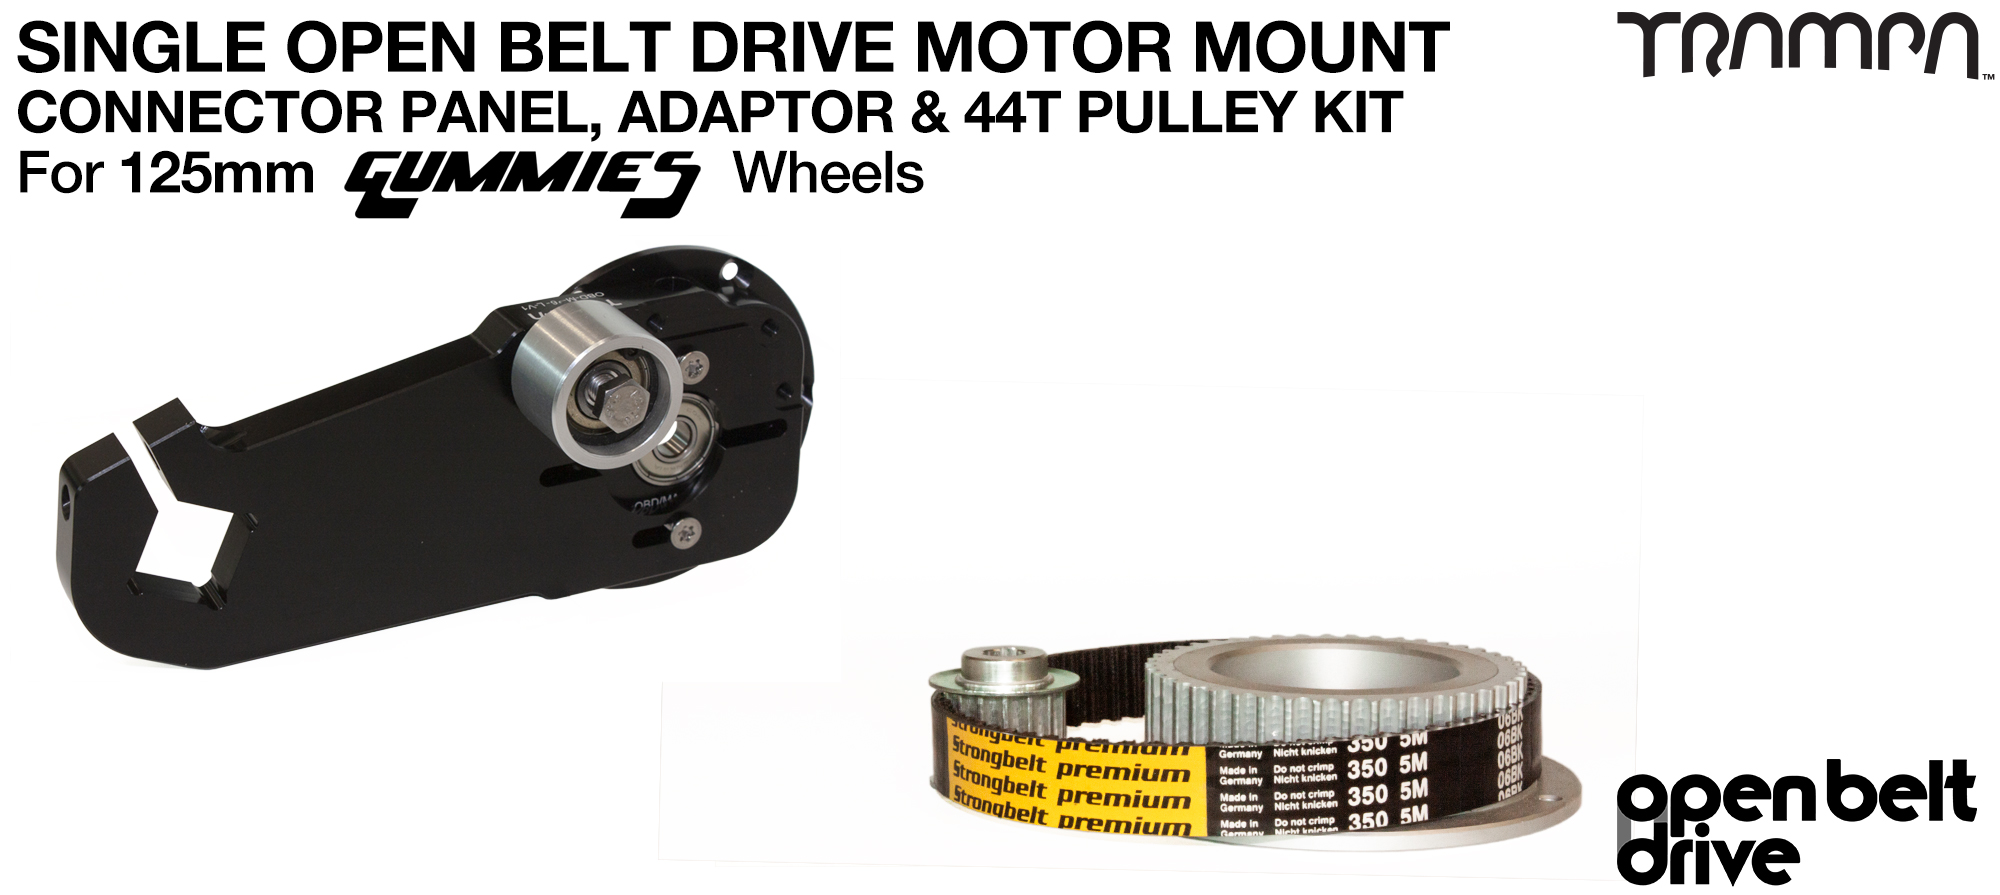 66T OBD Motor Mount & 44 tooth Pulley for GUMMY Wheels - SINGLE